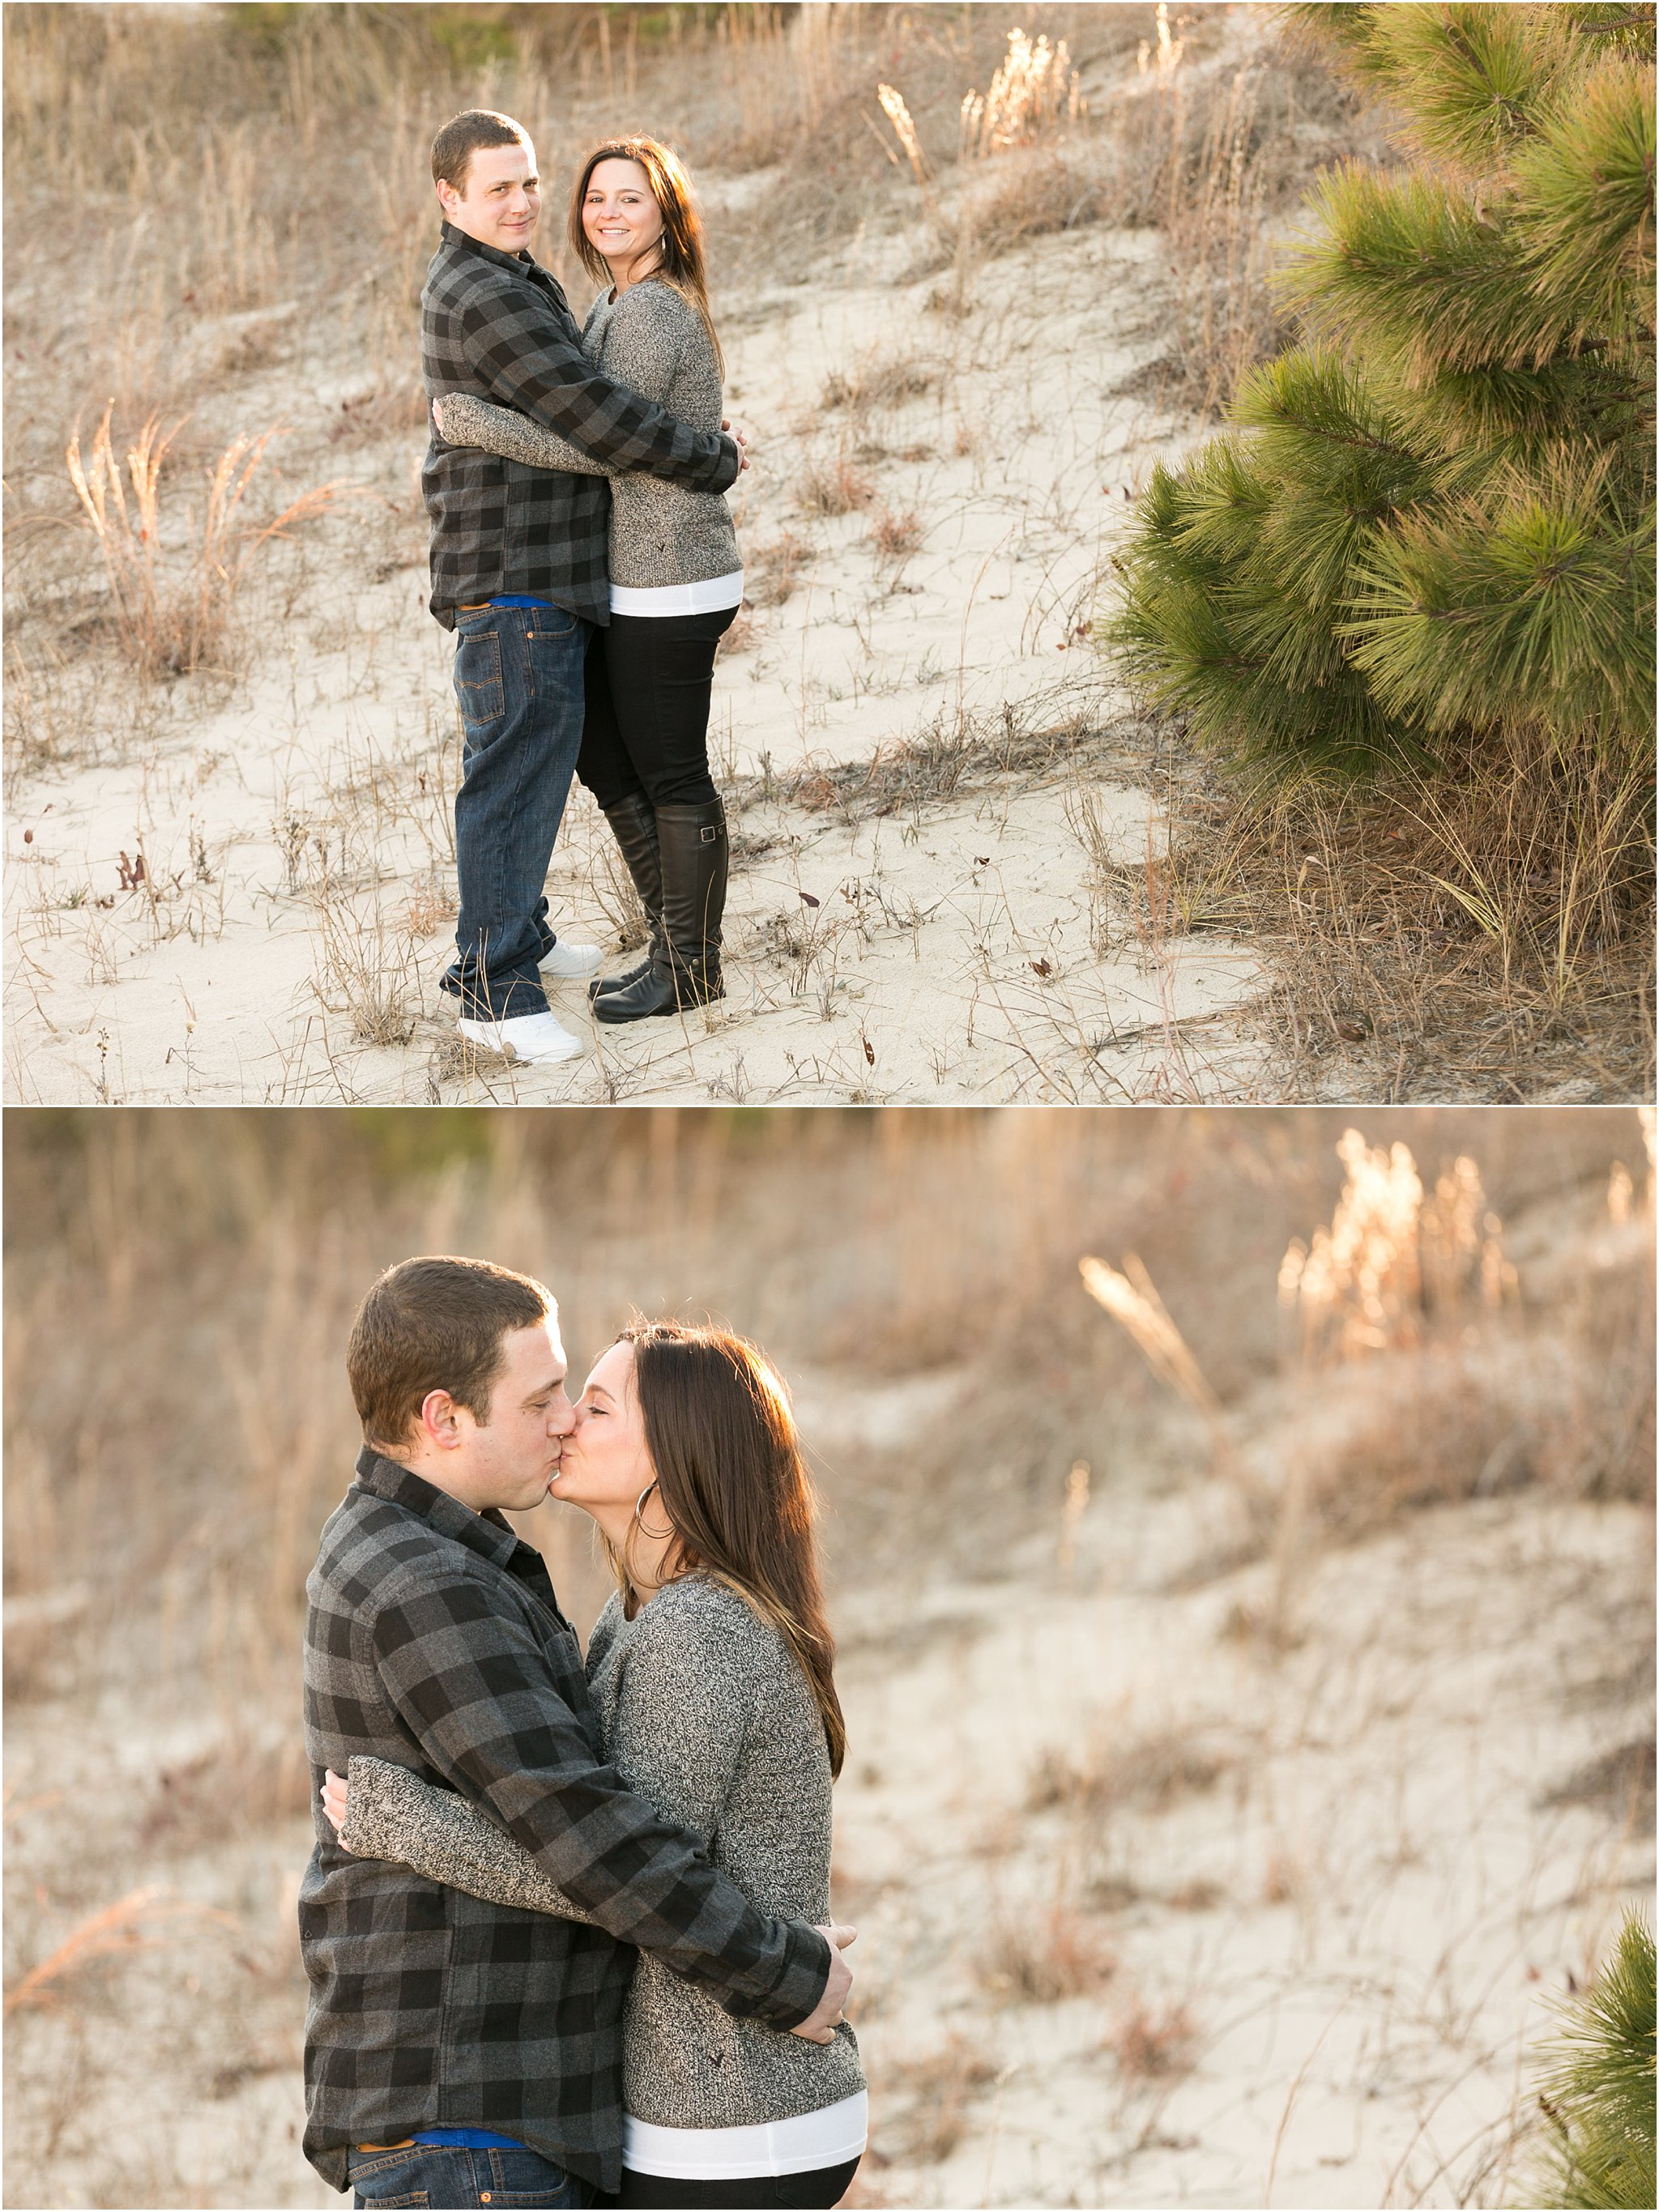 jessica_ryan_photography_winter_engagements_virginia_beach_oceanfront_virginia_0749